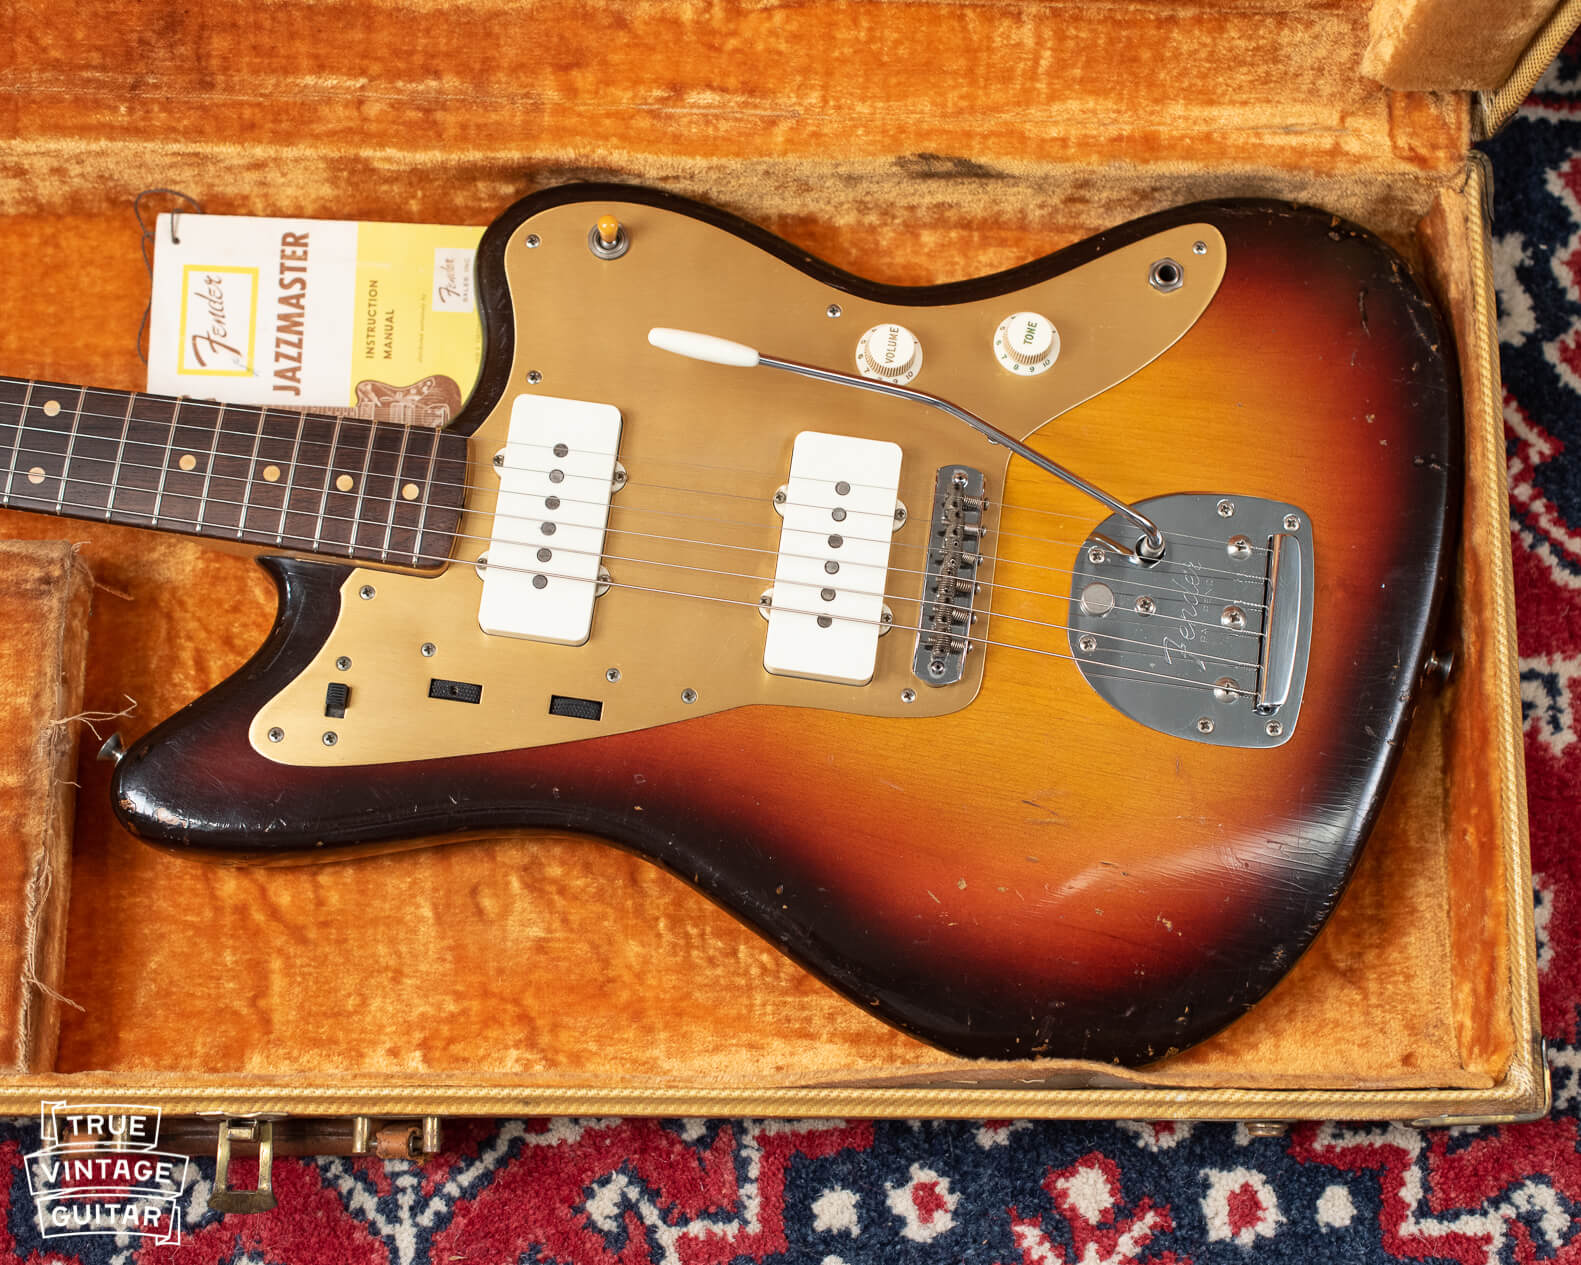 What is a gold guard Fender Jazzmaster